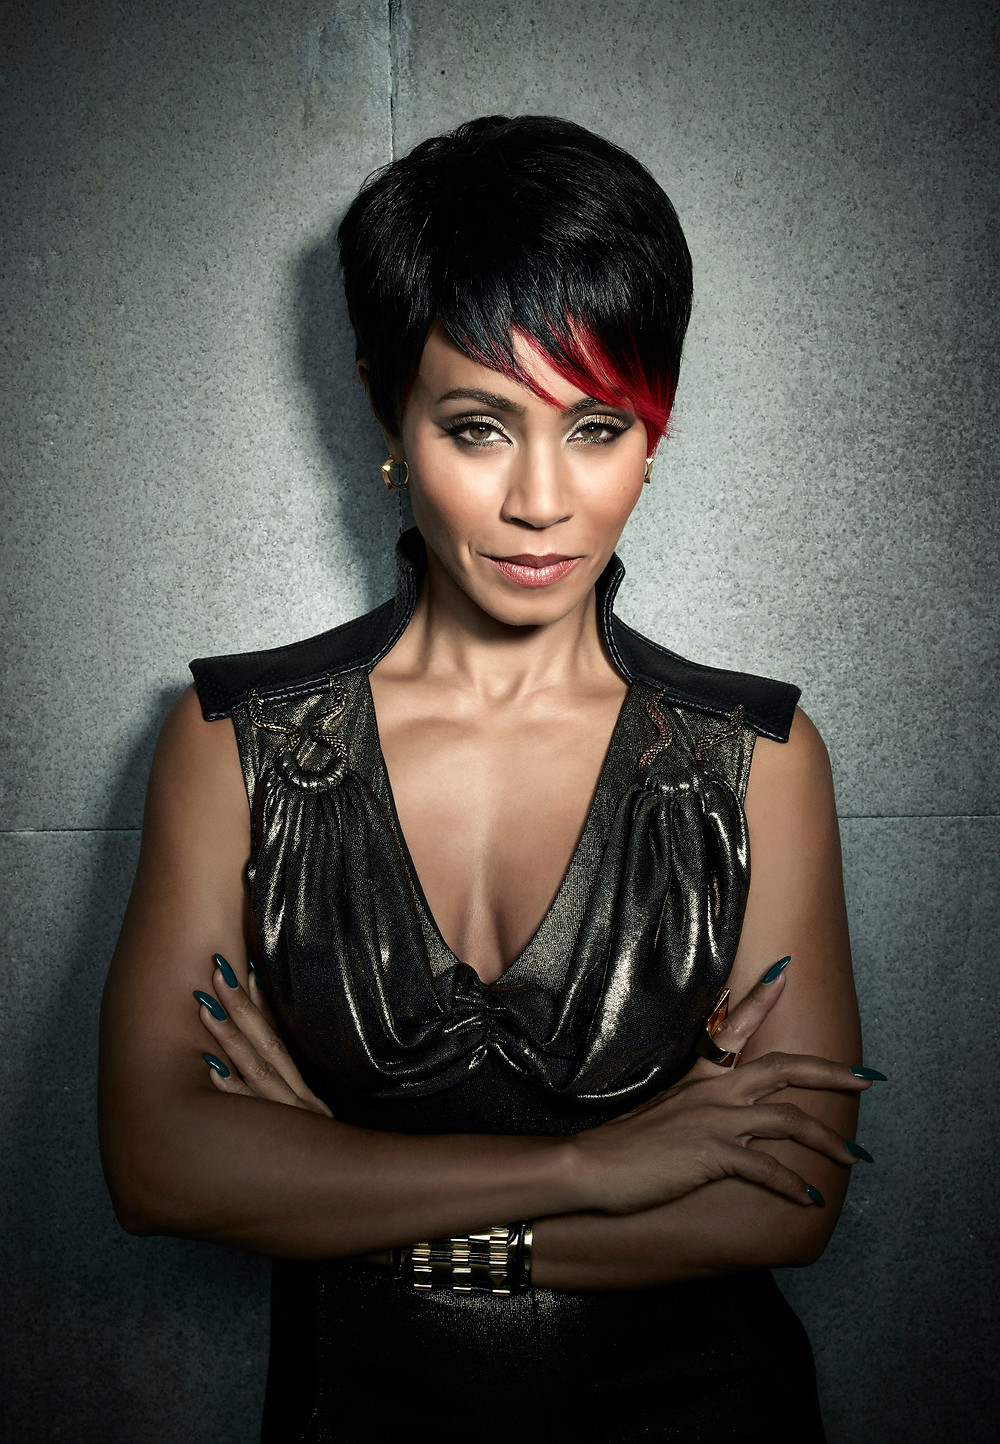 Gotham-Jada-Pinkett-Smith-as-Fish-Mooney.jpg